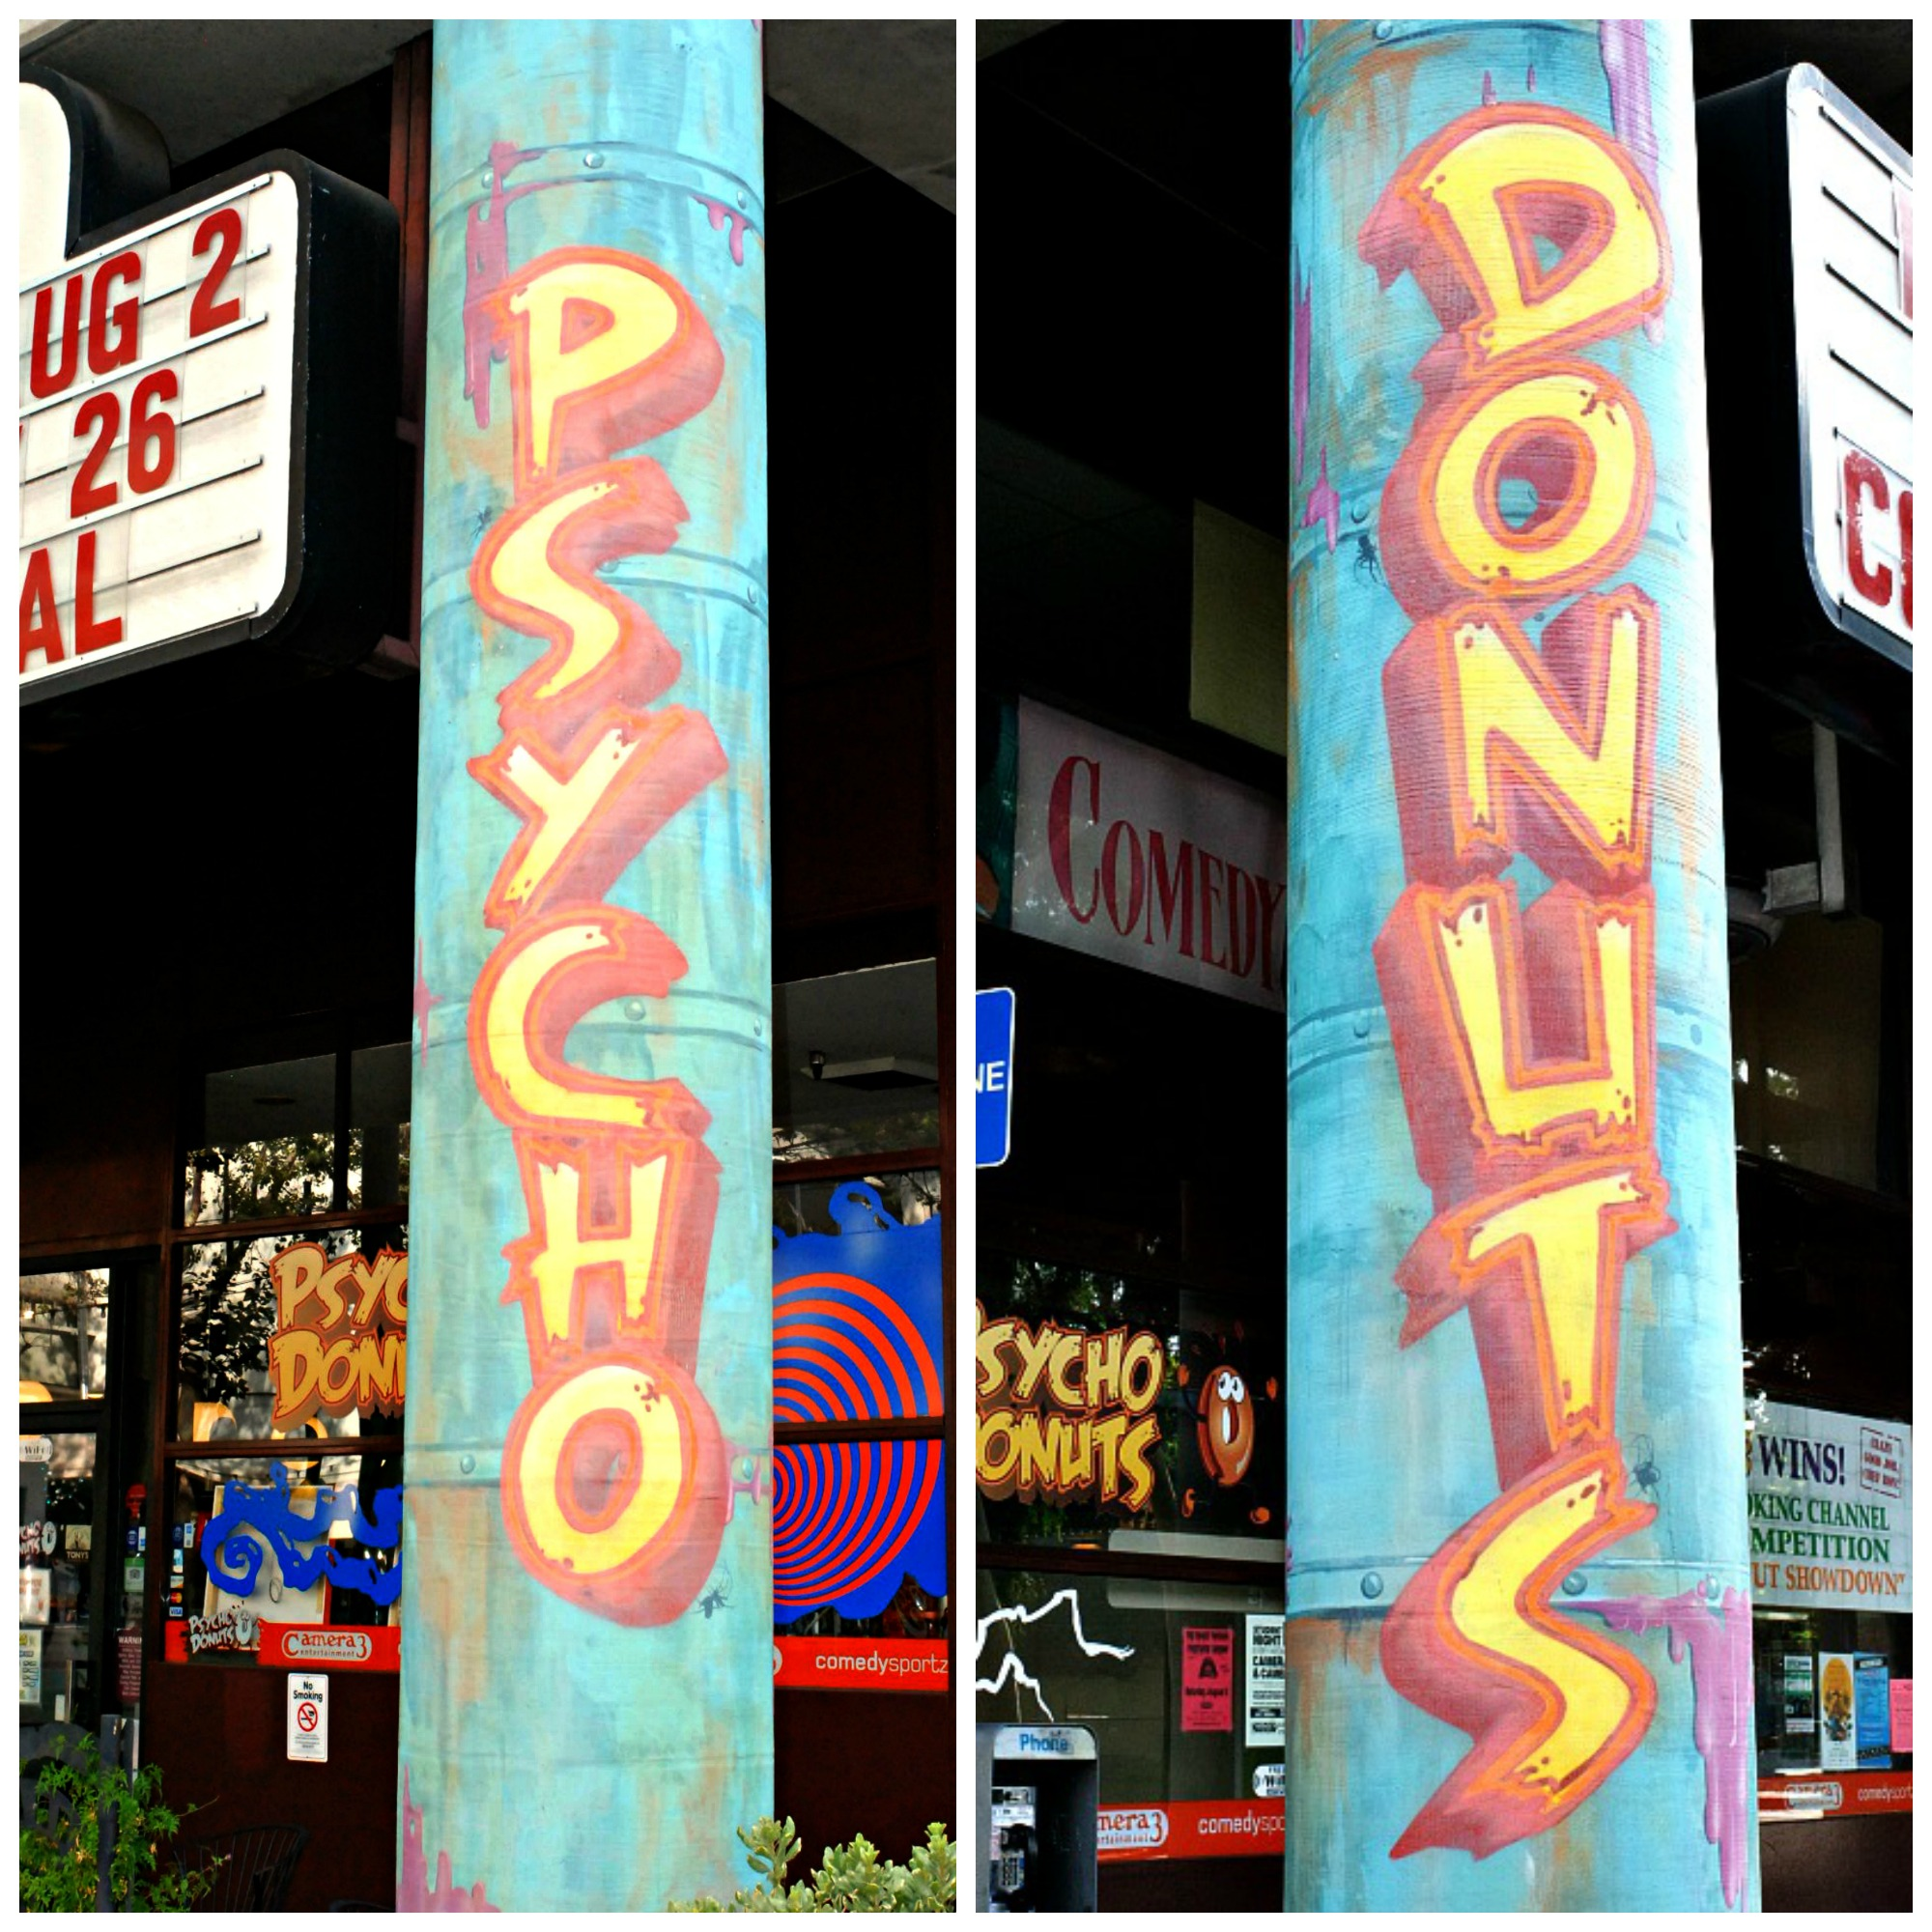 Psycho Donuts store front